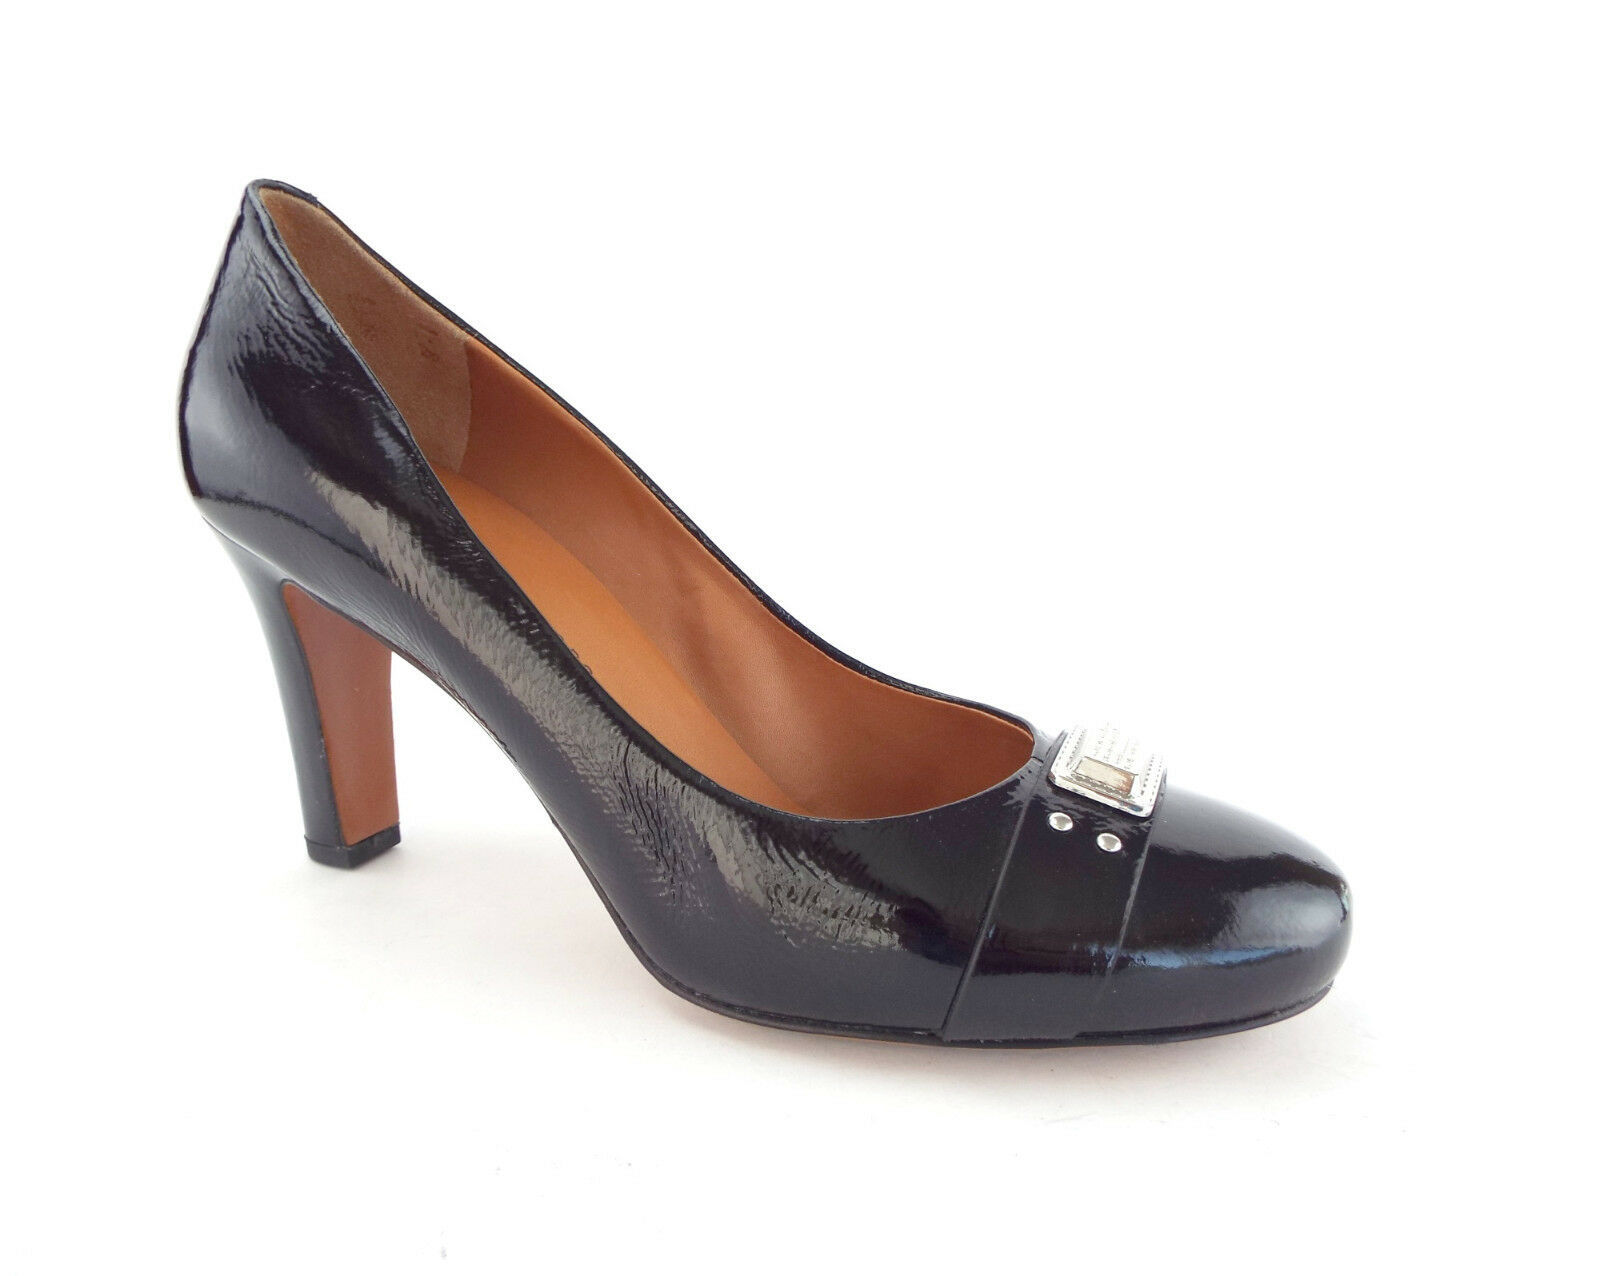 Primary image for MARC JACOBS Size 8.5 Black Patent Round Toe Pumps Heels Shoes 39